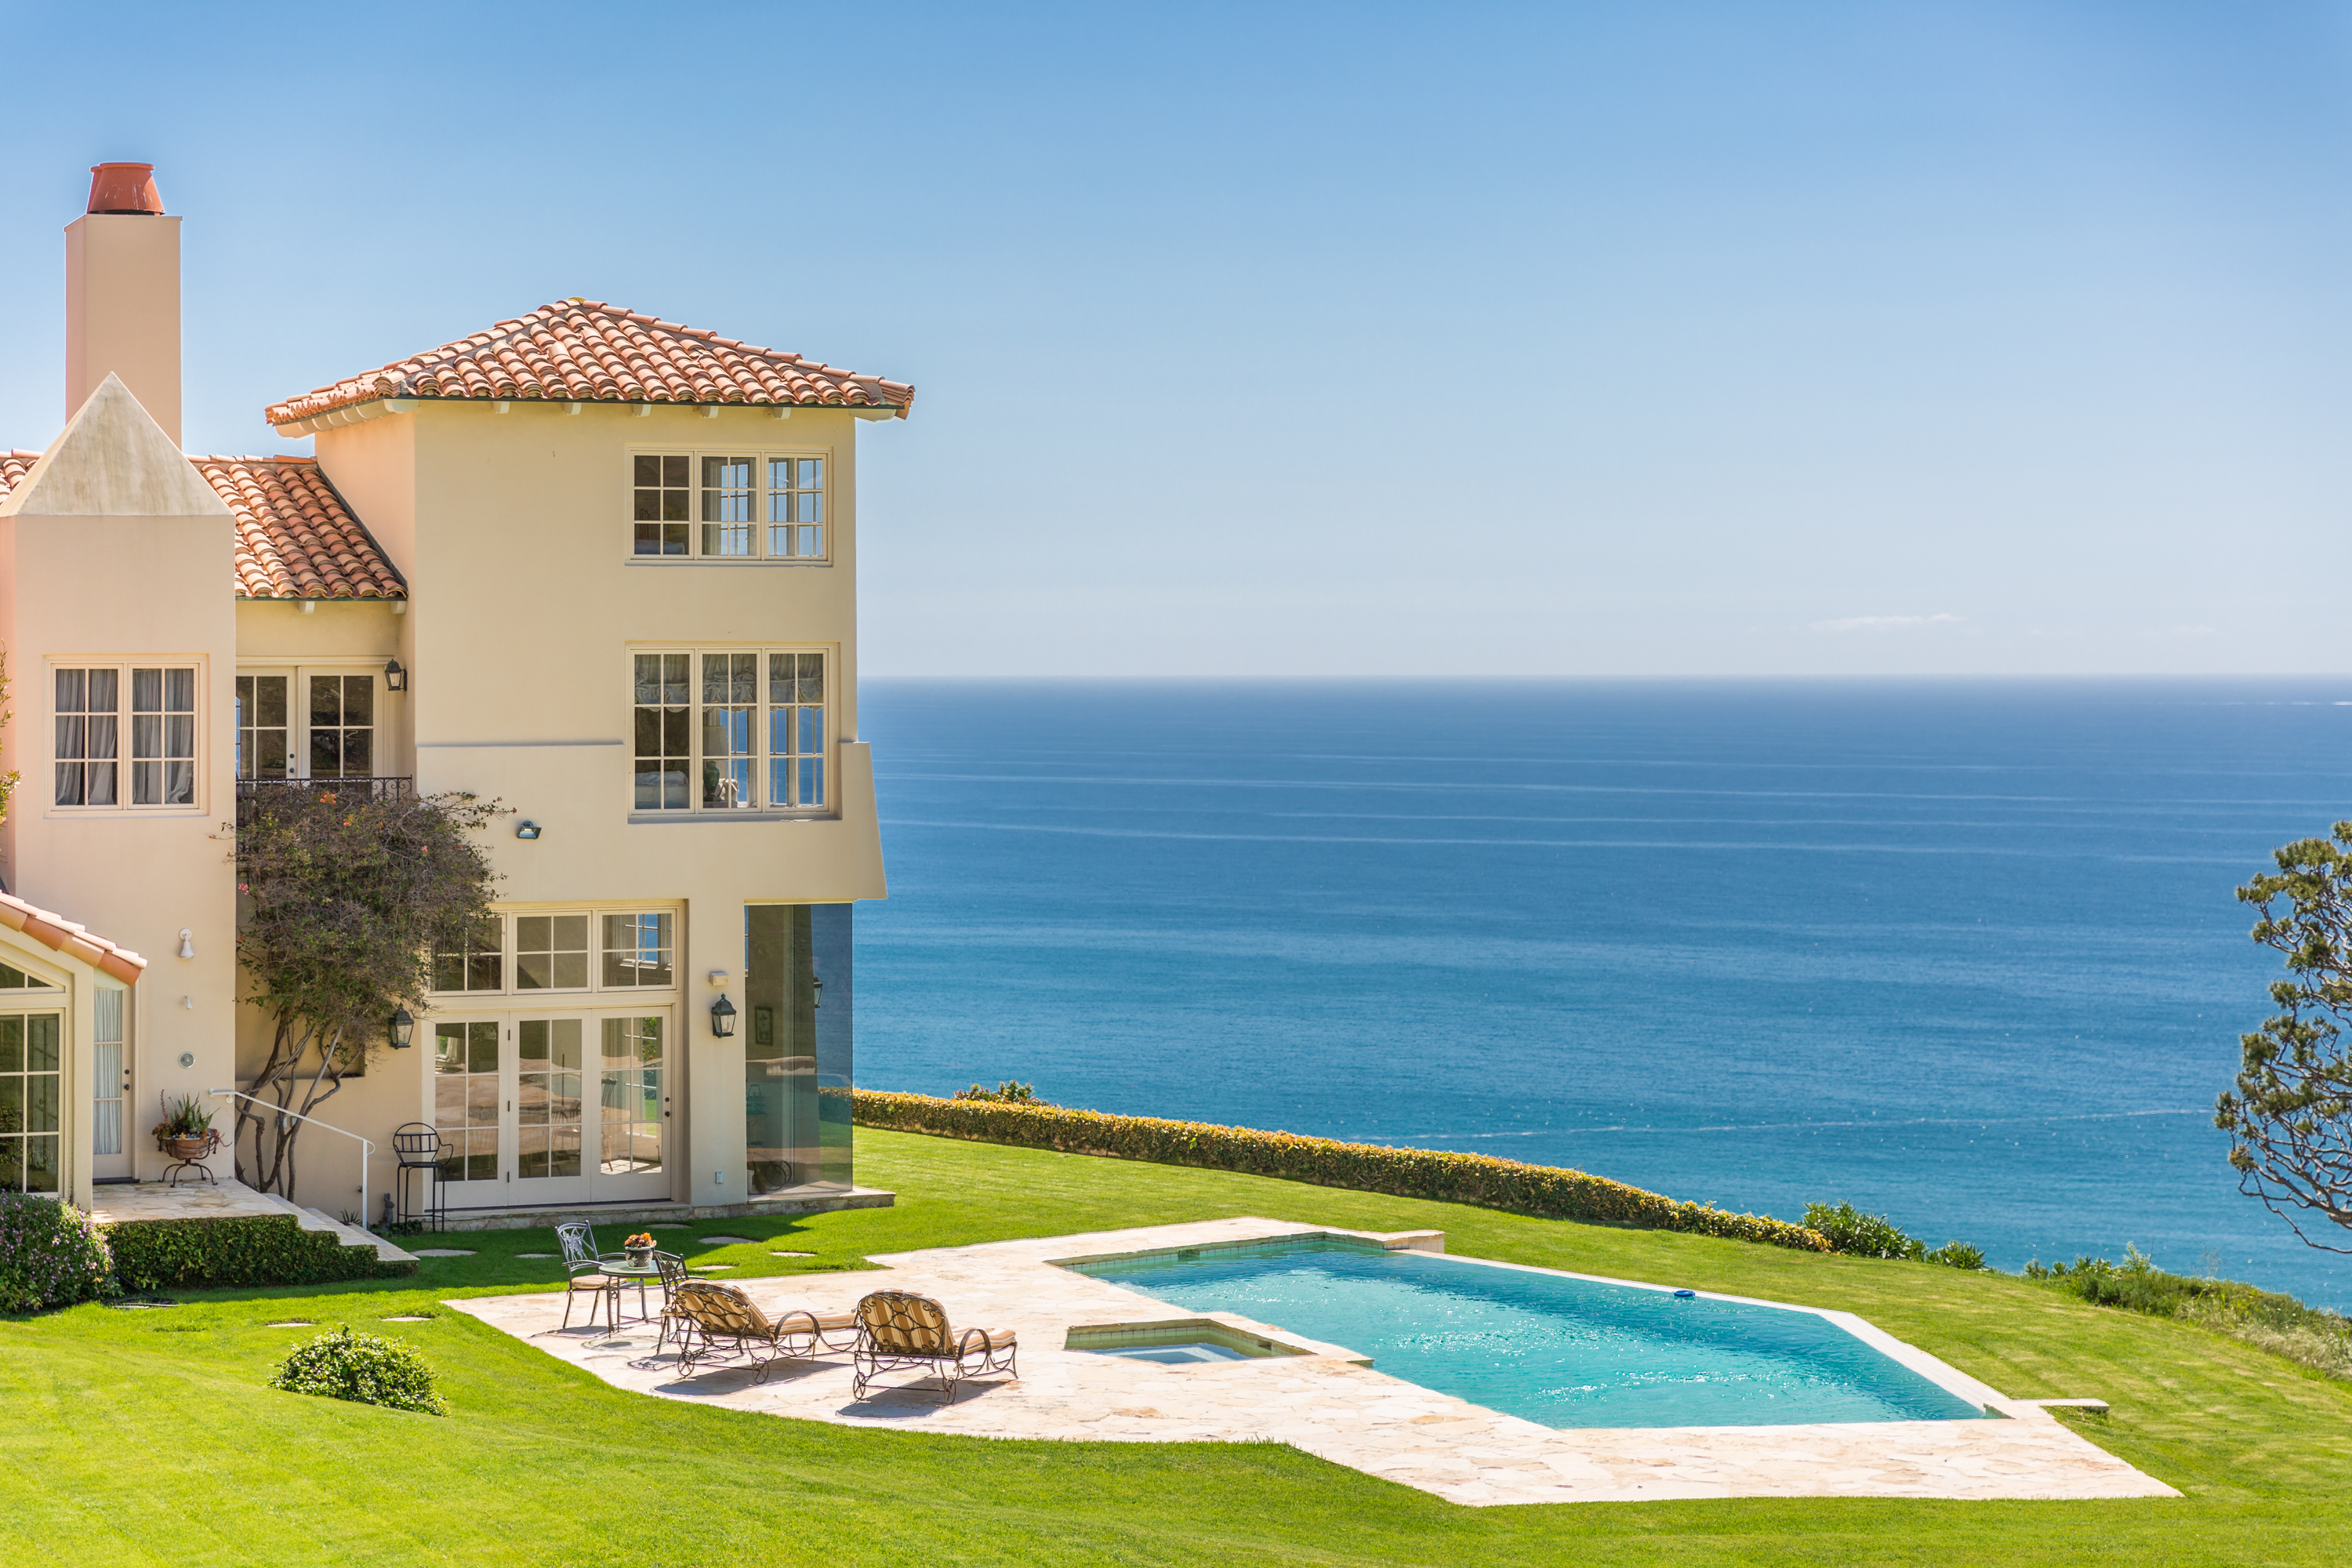 malibu ca real estate pool